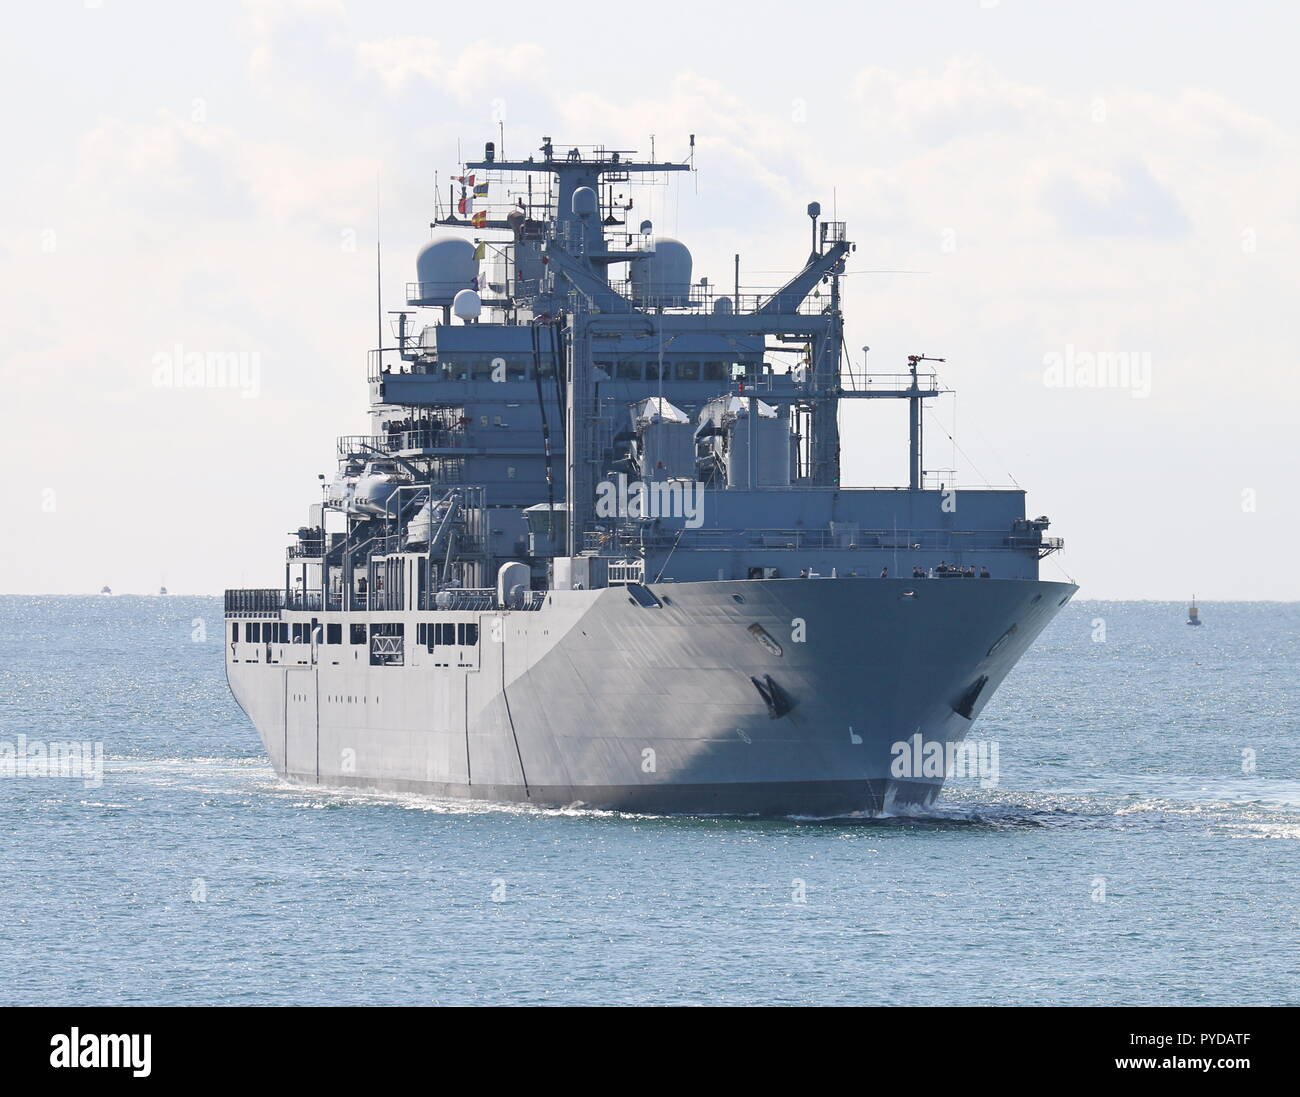 Fgs Stock Photos & Fgs Stock Images - Alamy